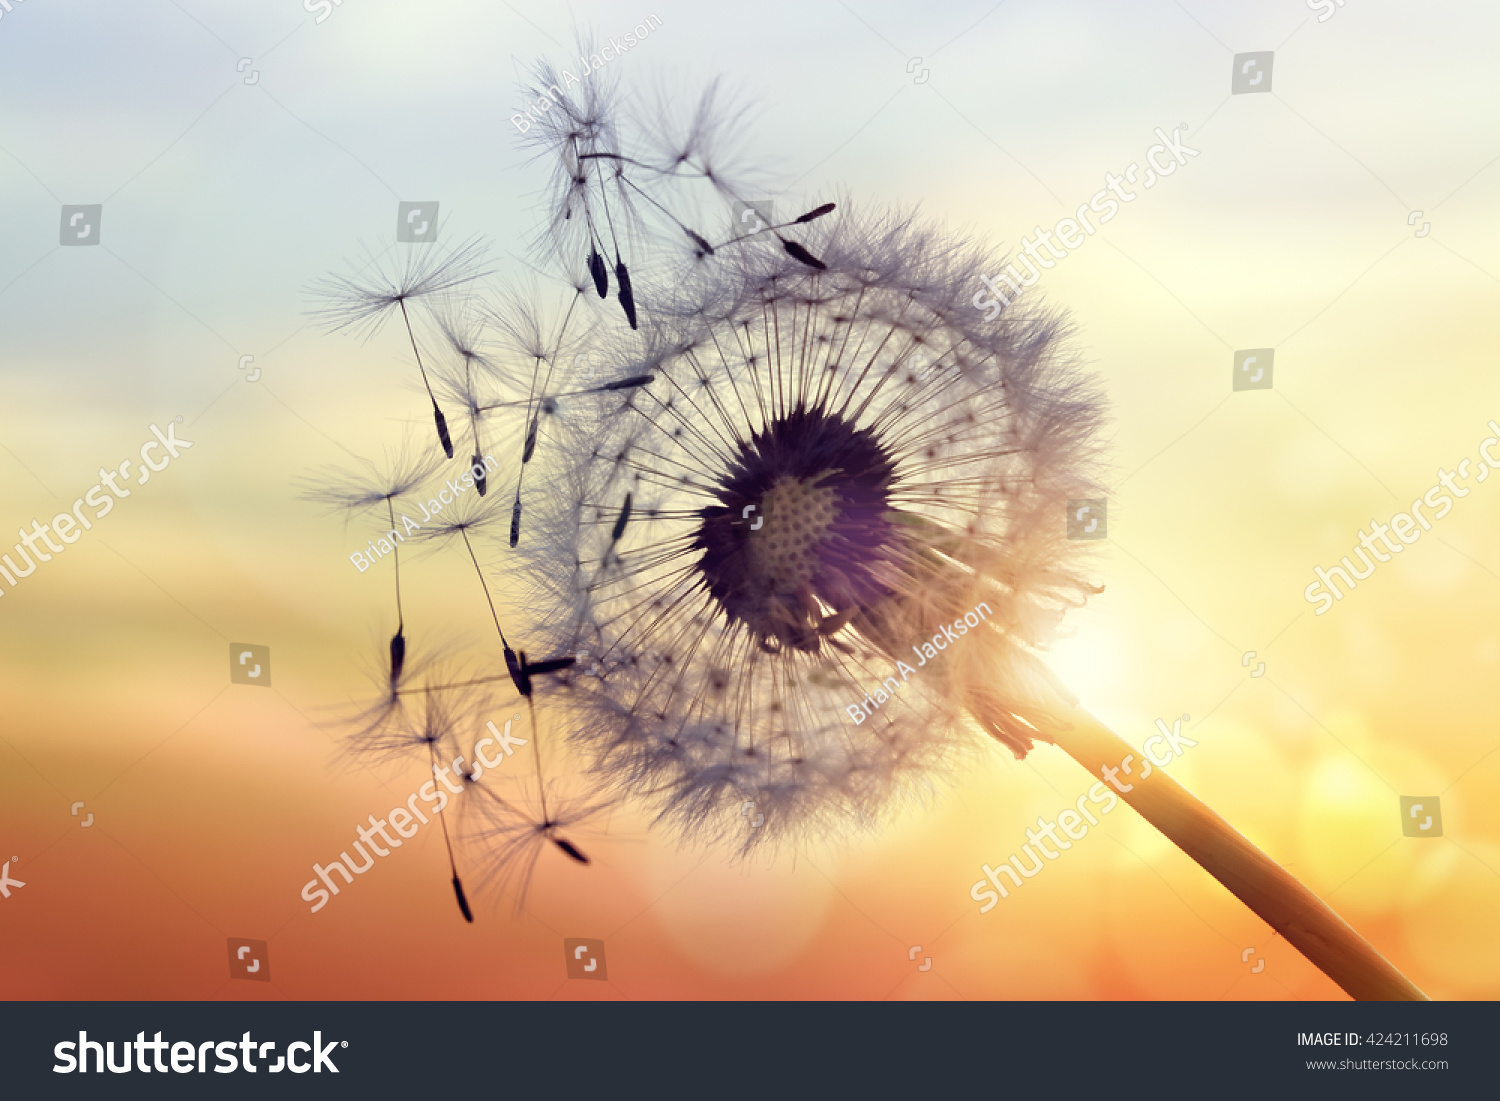 Dandelion silhouette against sunset seeds blowing stock for Refreshing pictures